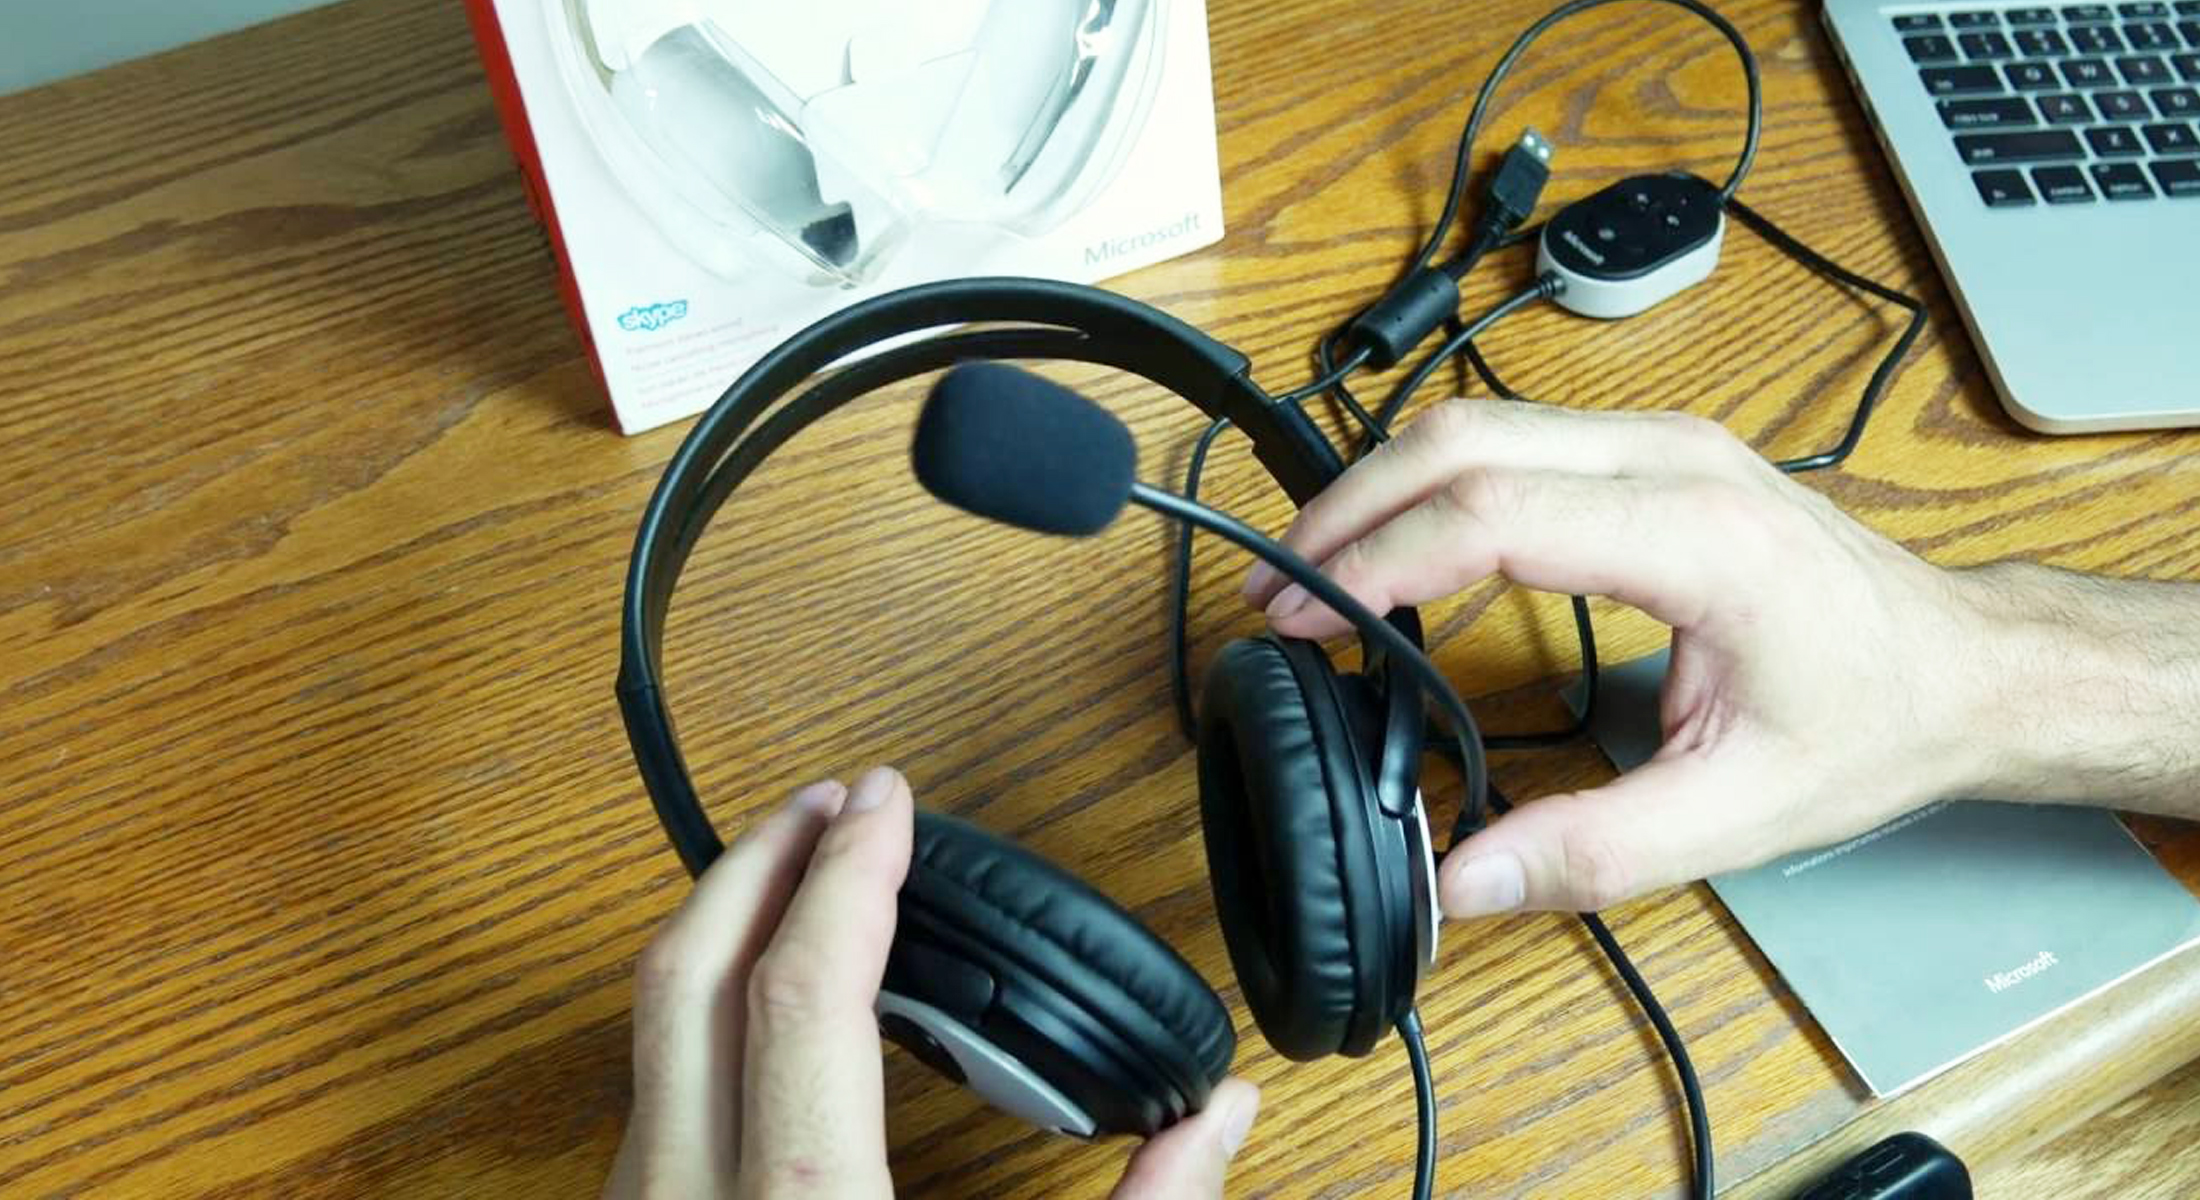 Microsoft LifeChat LX-3000 Headset – Bringing Video Chats To The Next Level